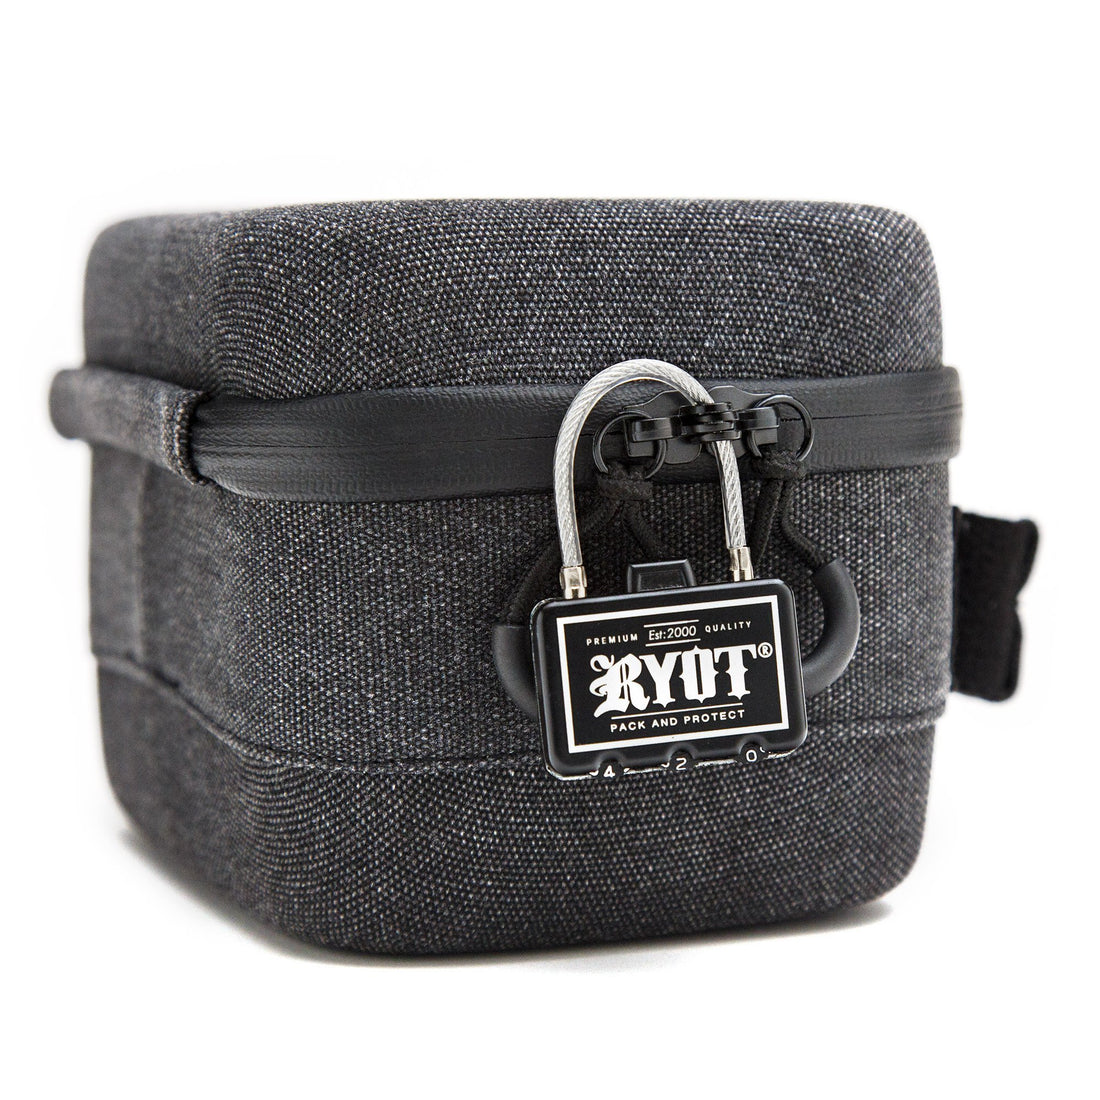 RYOT Combination Lock - 420 Science - The most trusted online smoke shop.